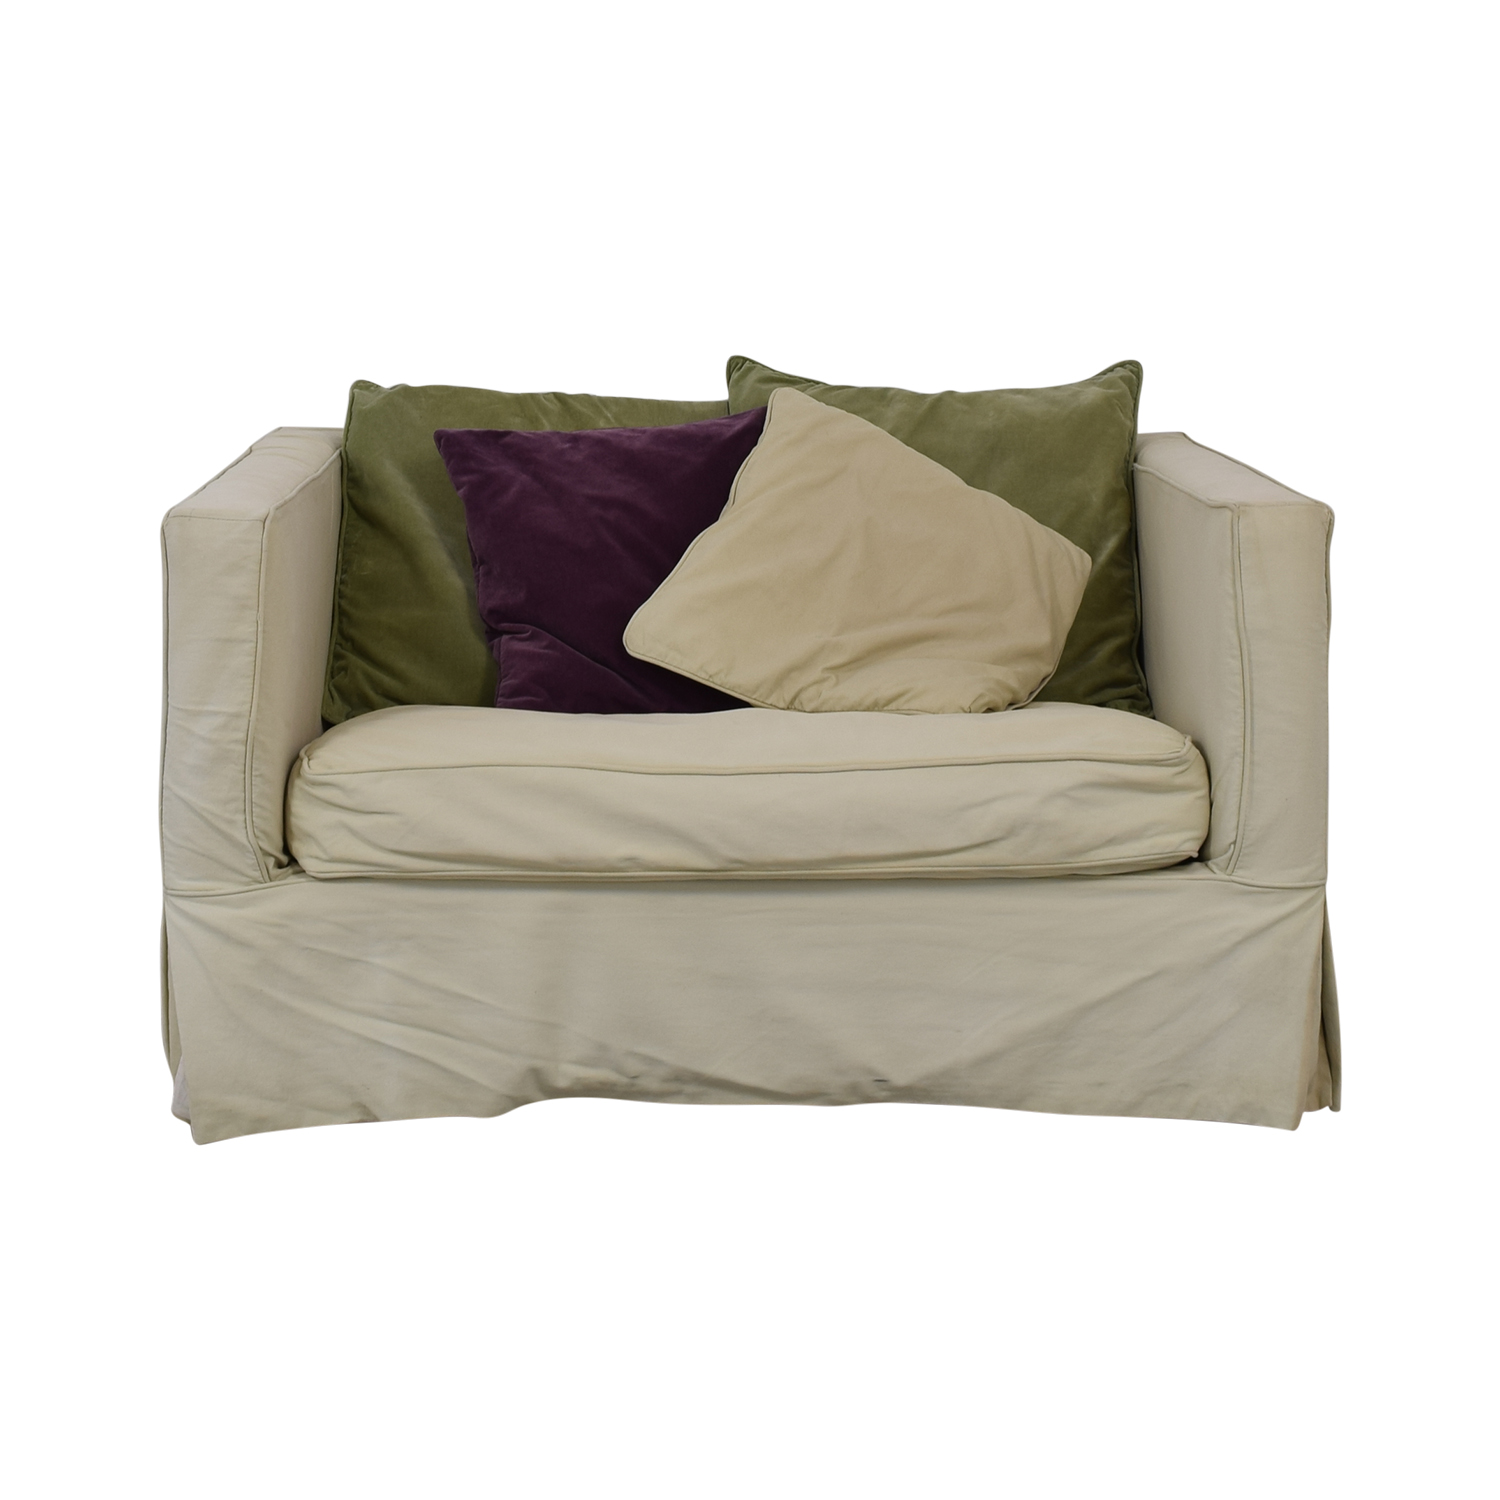 Crate & Barrel Crate & Barrel Beige Single Cushion Loveseat with Twin Pull Out Bed coupon